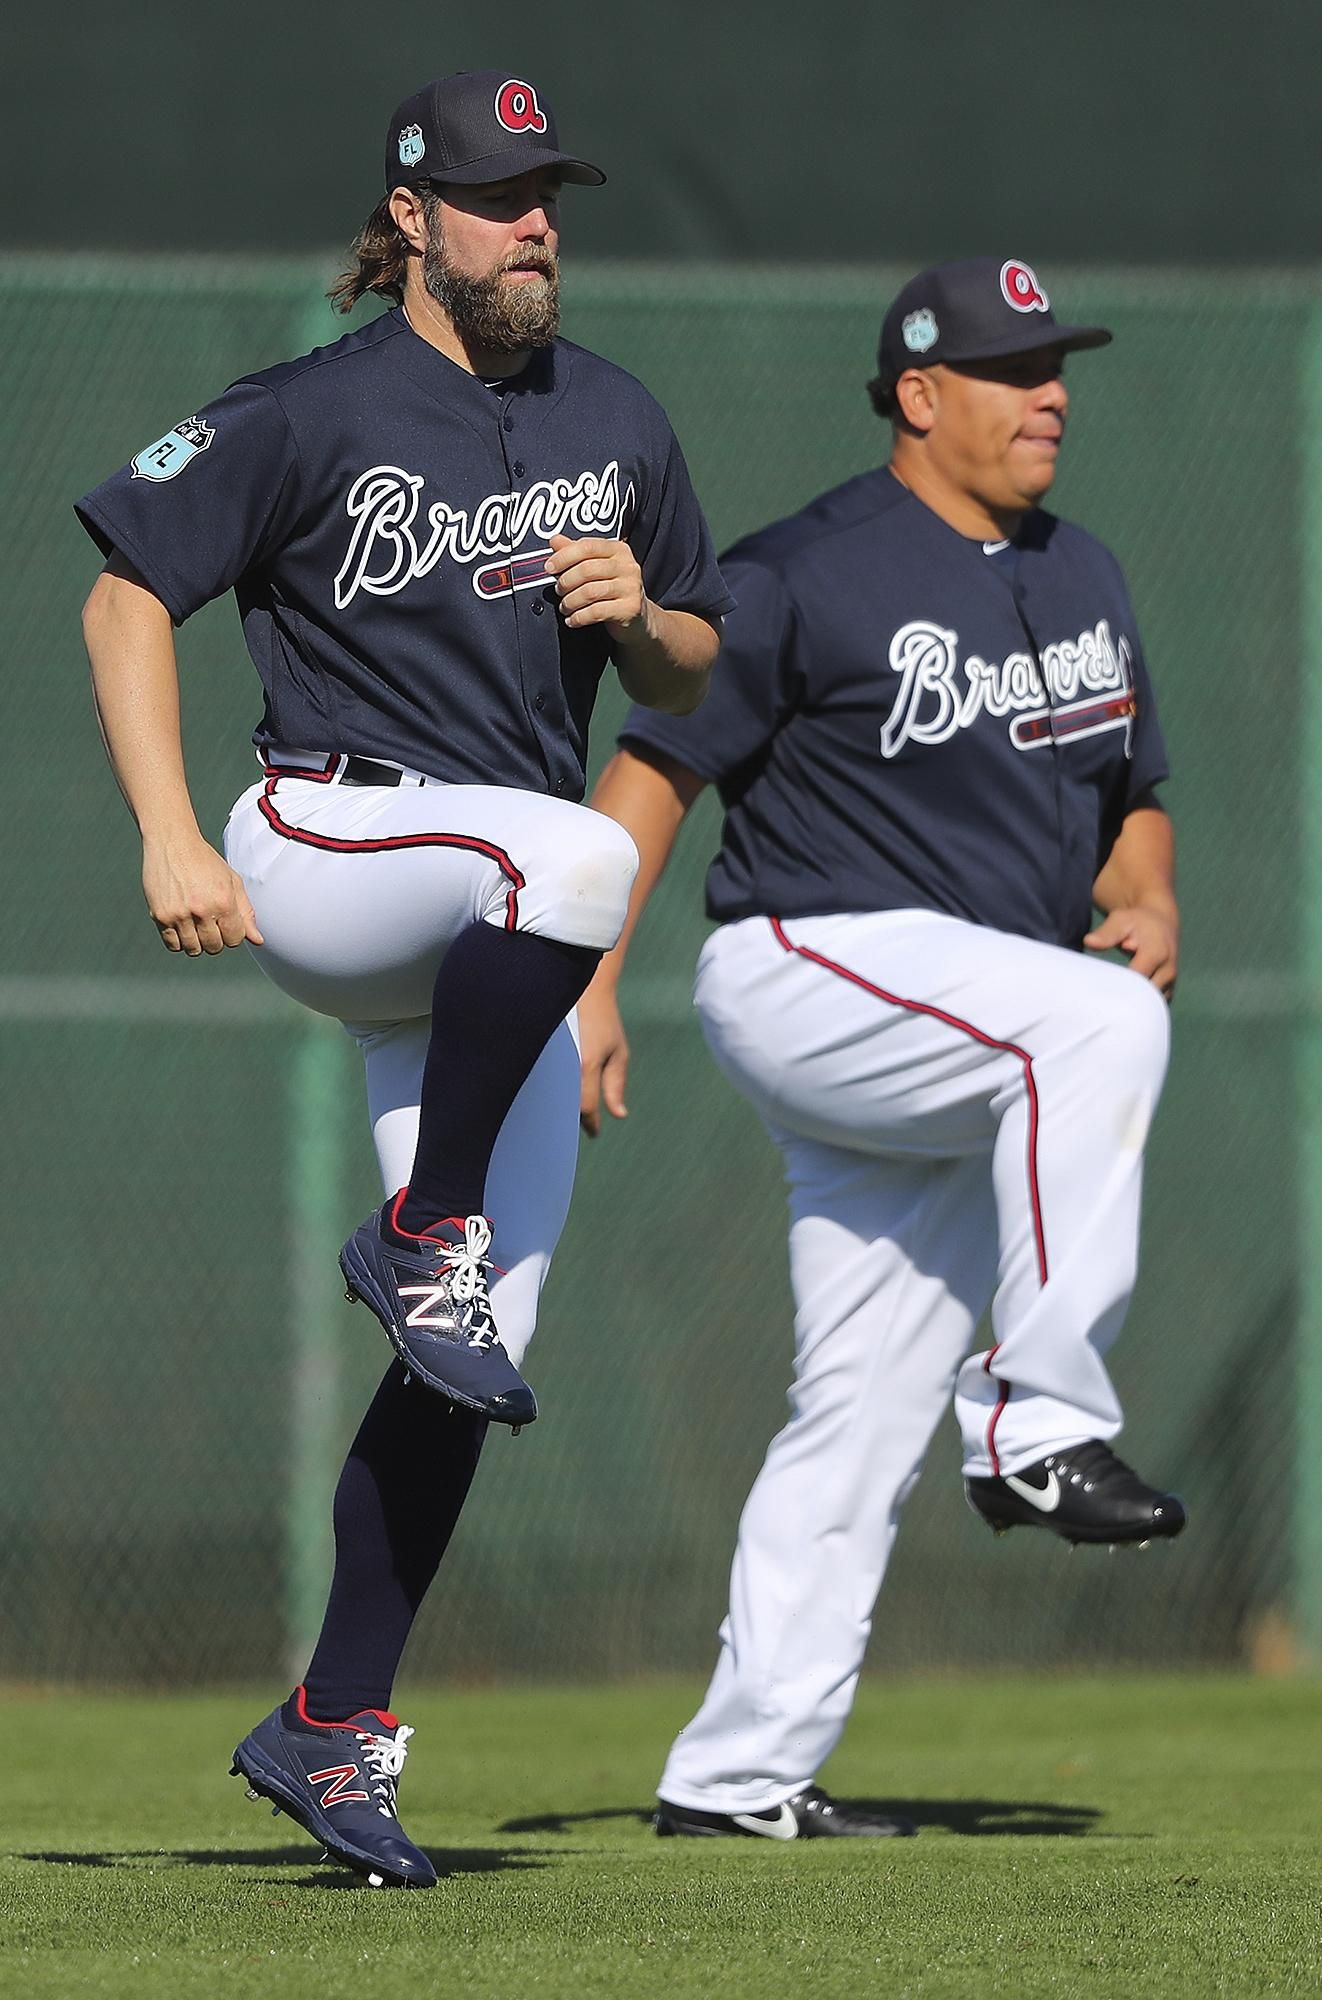 Braves Pitchers R A Dickey Left And Bartolo Colon Loosen Up During Spring Training On Thursday Feb 1 Atlanta Braves Baseball Braves Baseball Atlanta Braves